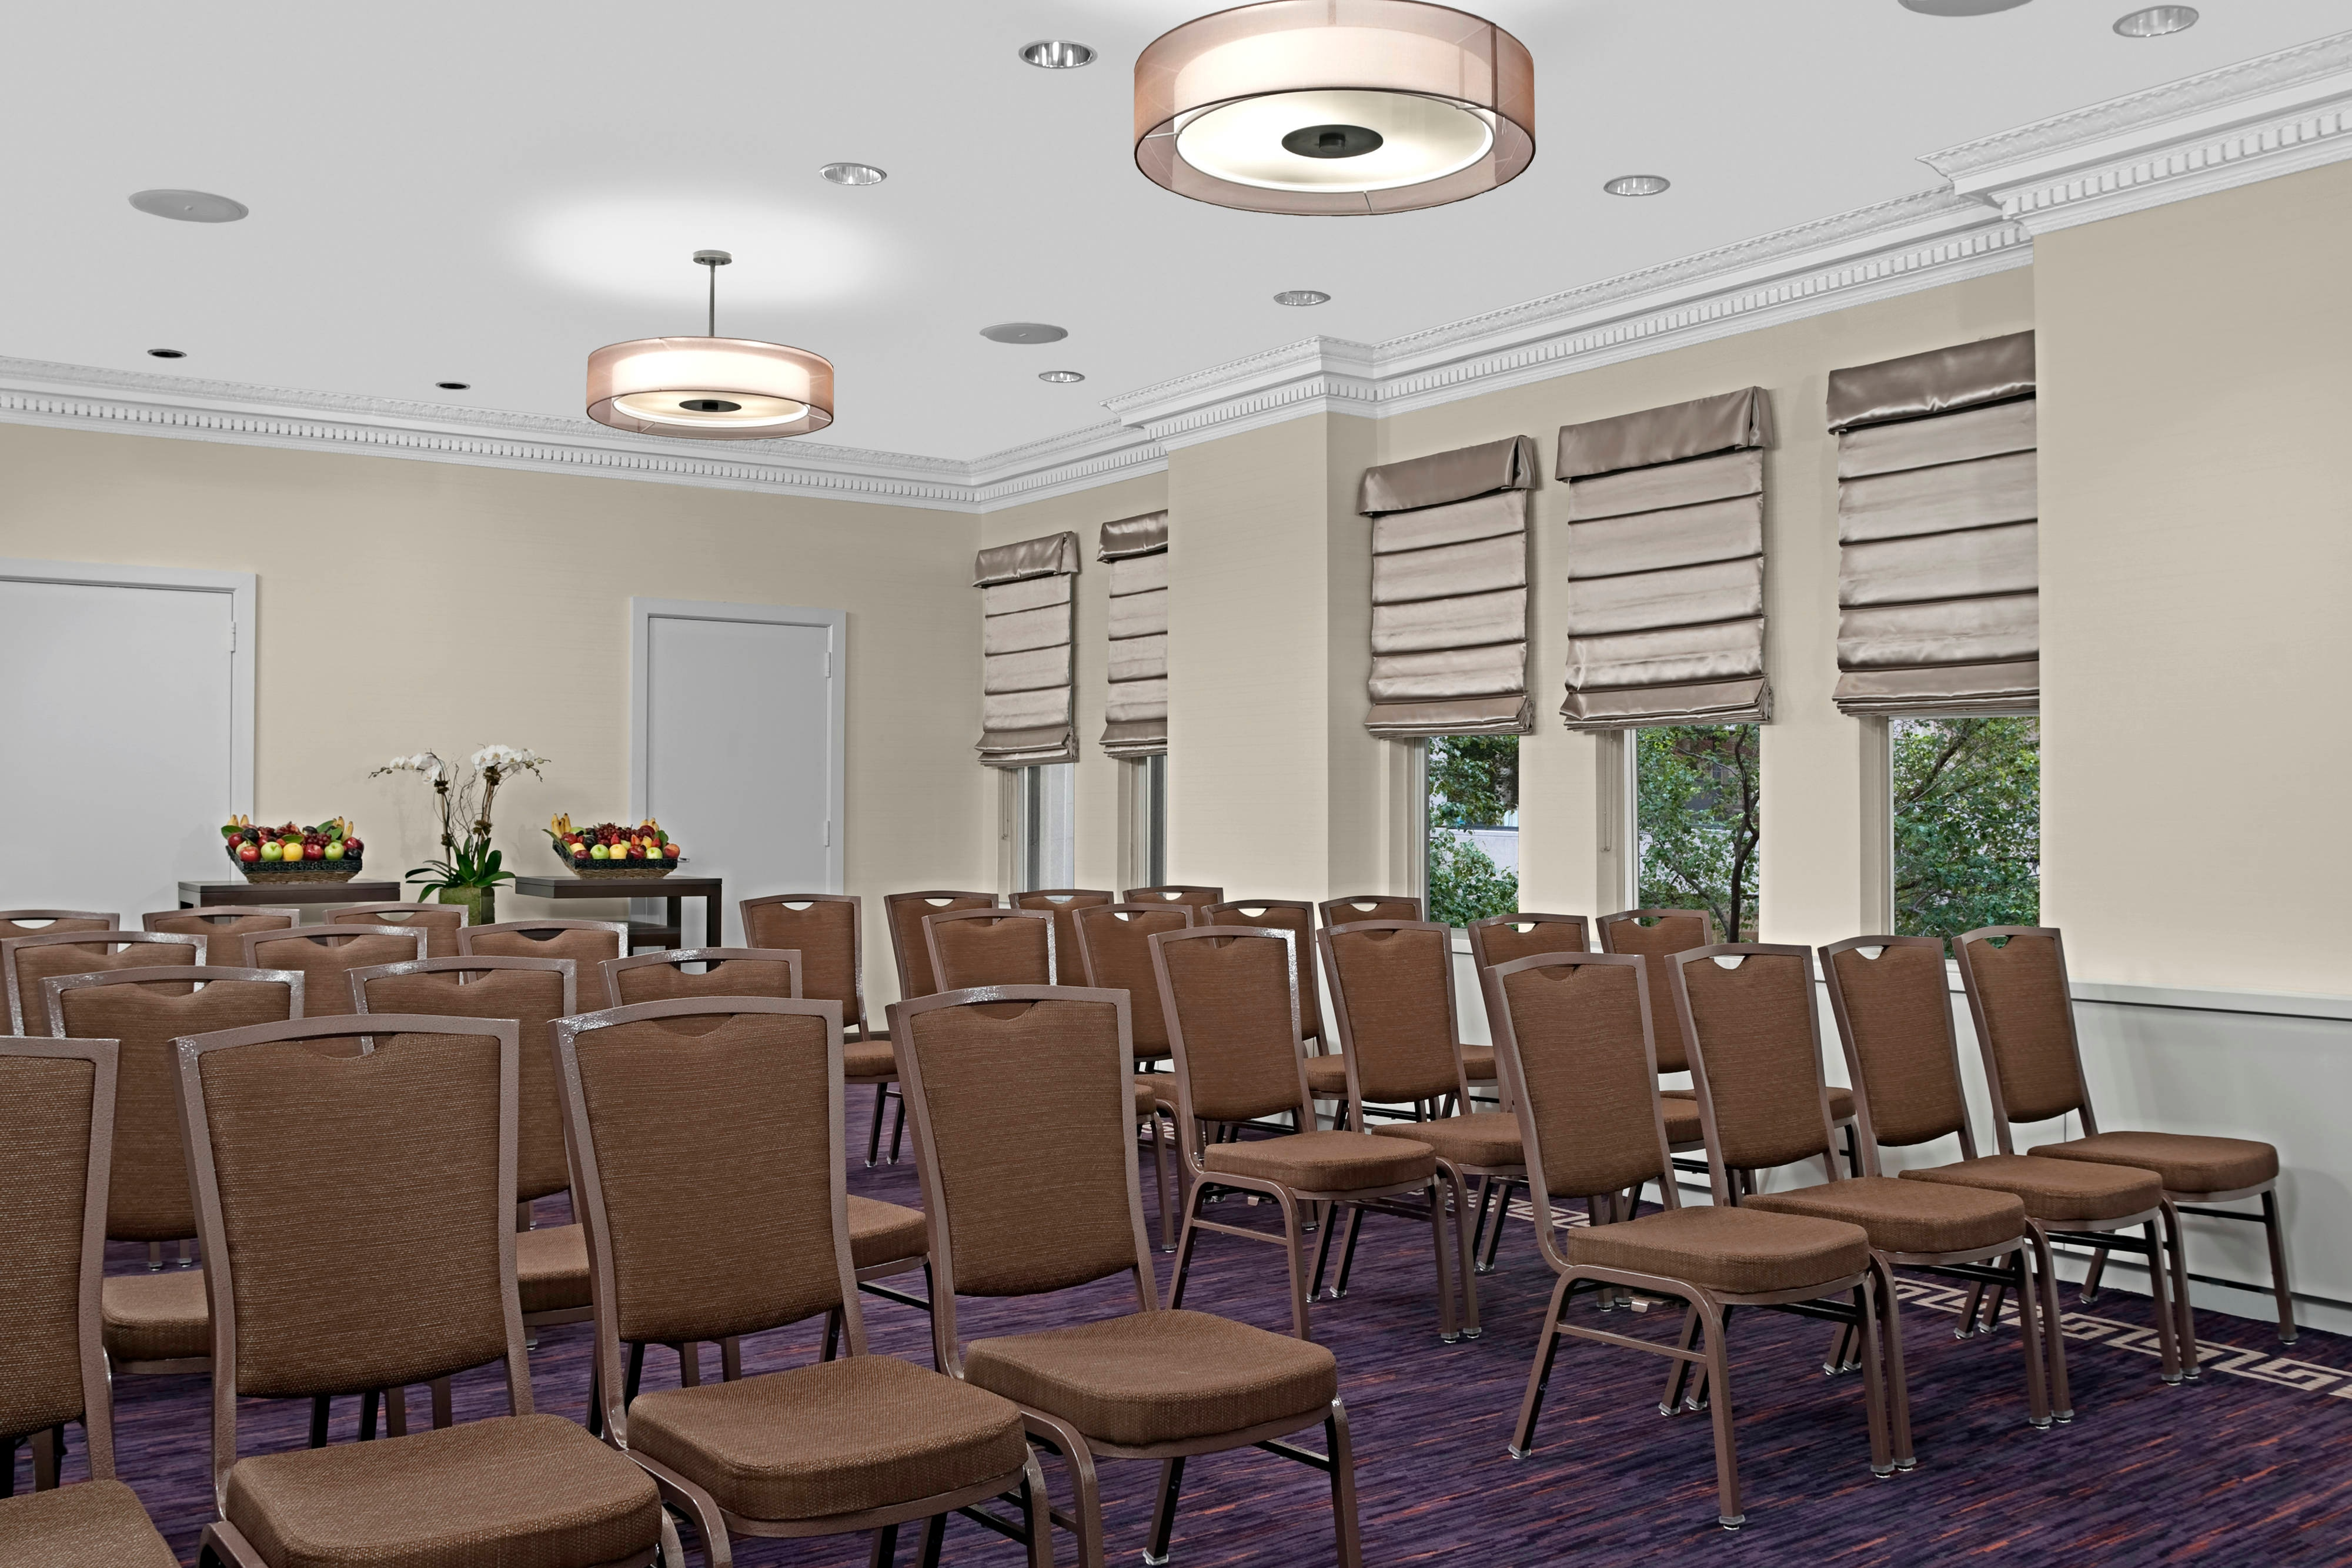 Hotel meeting space, meeting rooms,  boardroom, hotel function space.